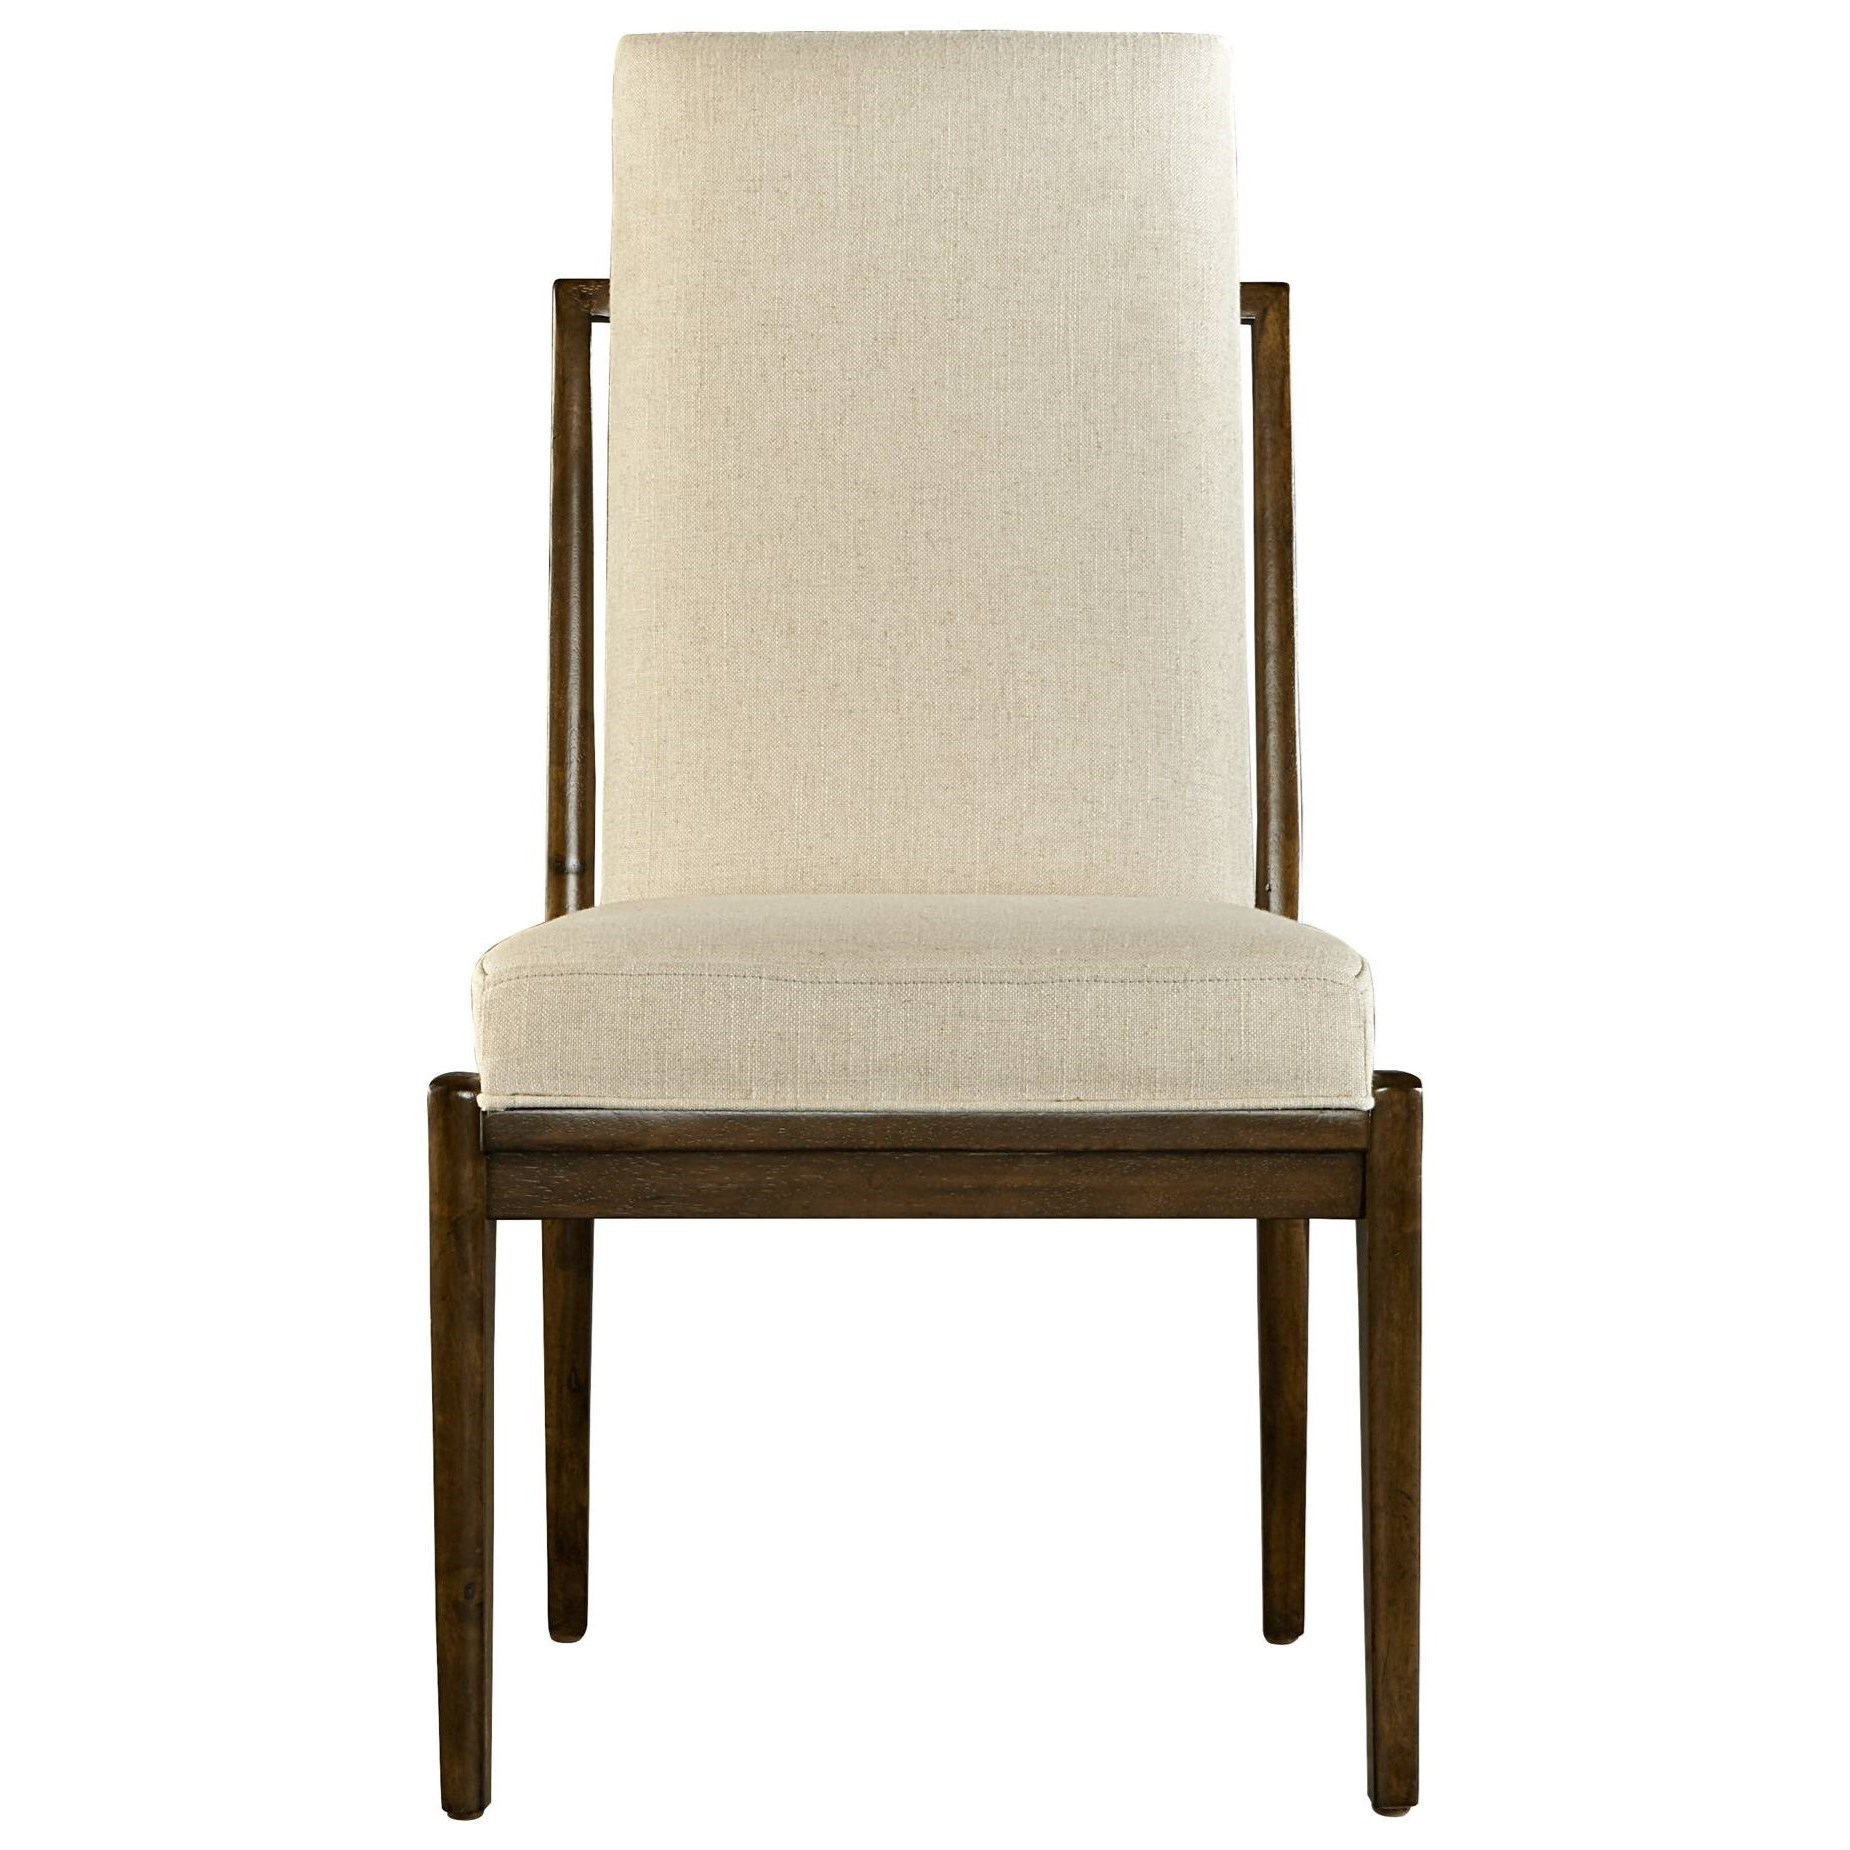 Awesome Stanley Furniture Santa Clara Upholstered Host Chair   Becker Furniture  World   Dining Side Chairs